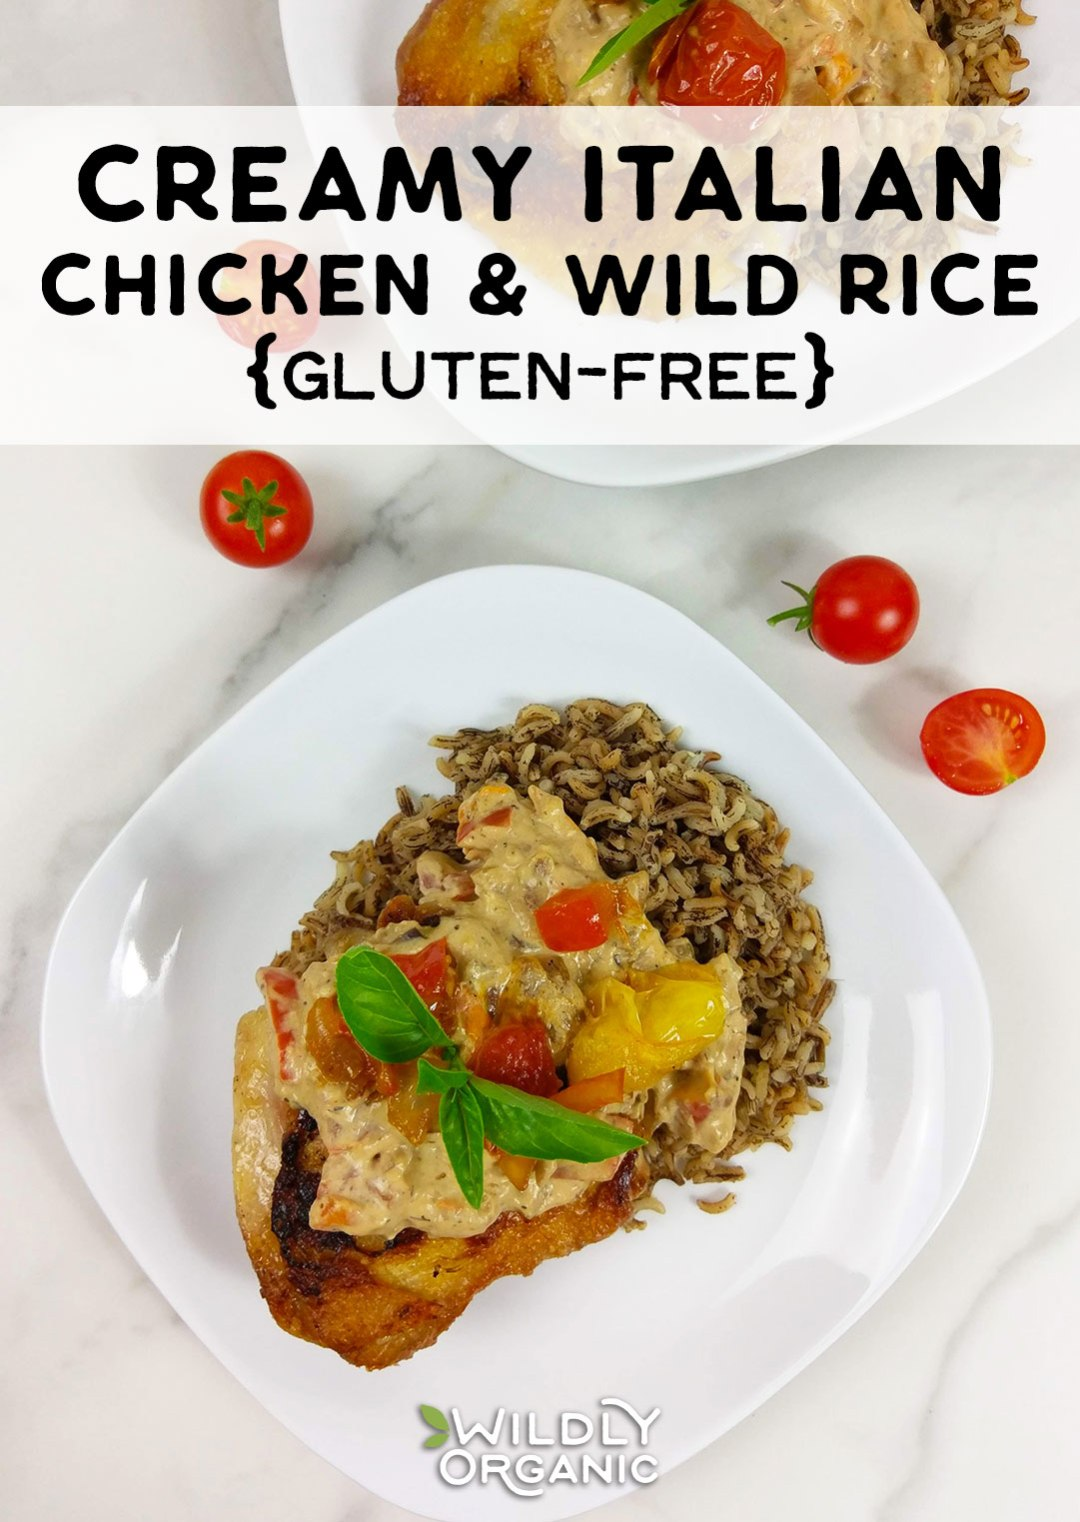 This easy Creamy Italian Chicken and Wild Rice recipe uses Italian dressing for quick and delicious flavor. It's perfect for weeknight meals that the whole family will love. It's ready in just under an hour, too. Use precooked wild rice for an even faster prep time. What's not to love about this gluten-free meal?